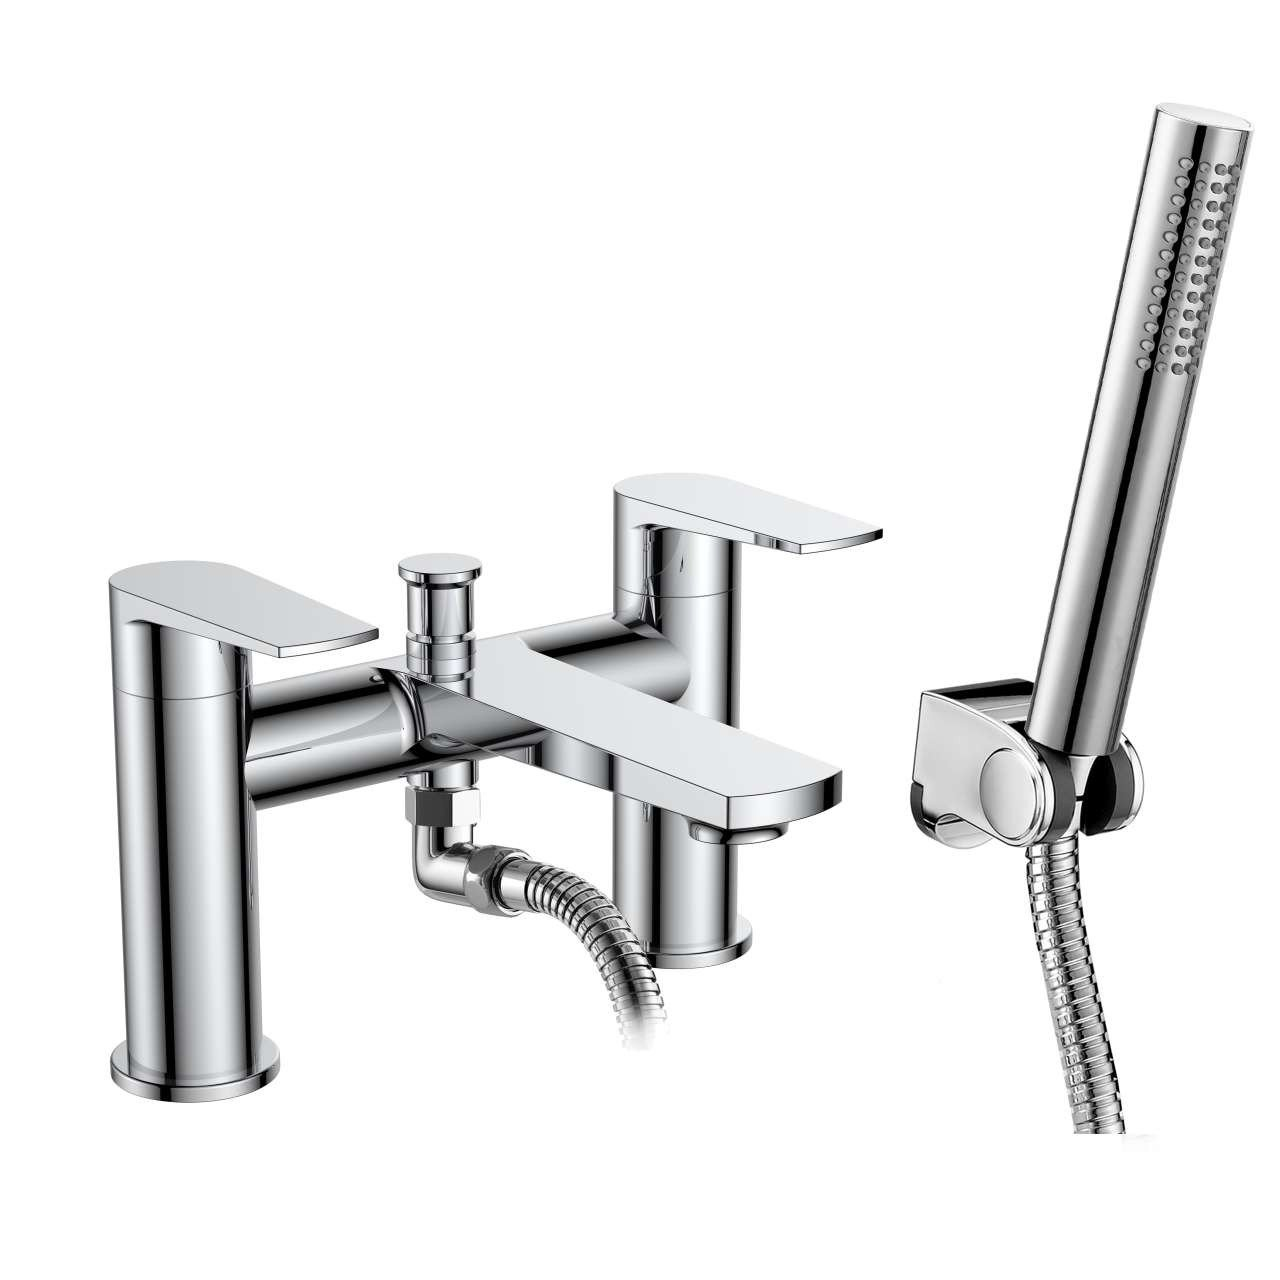 Nuie Bailey Round Deck Mounted Bath and Shower Mixer Tap - BAI304